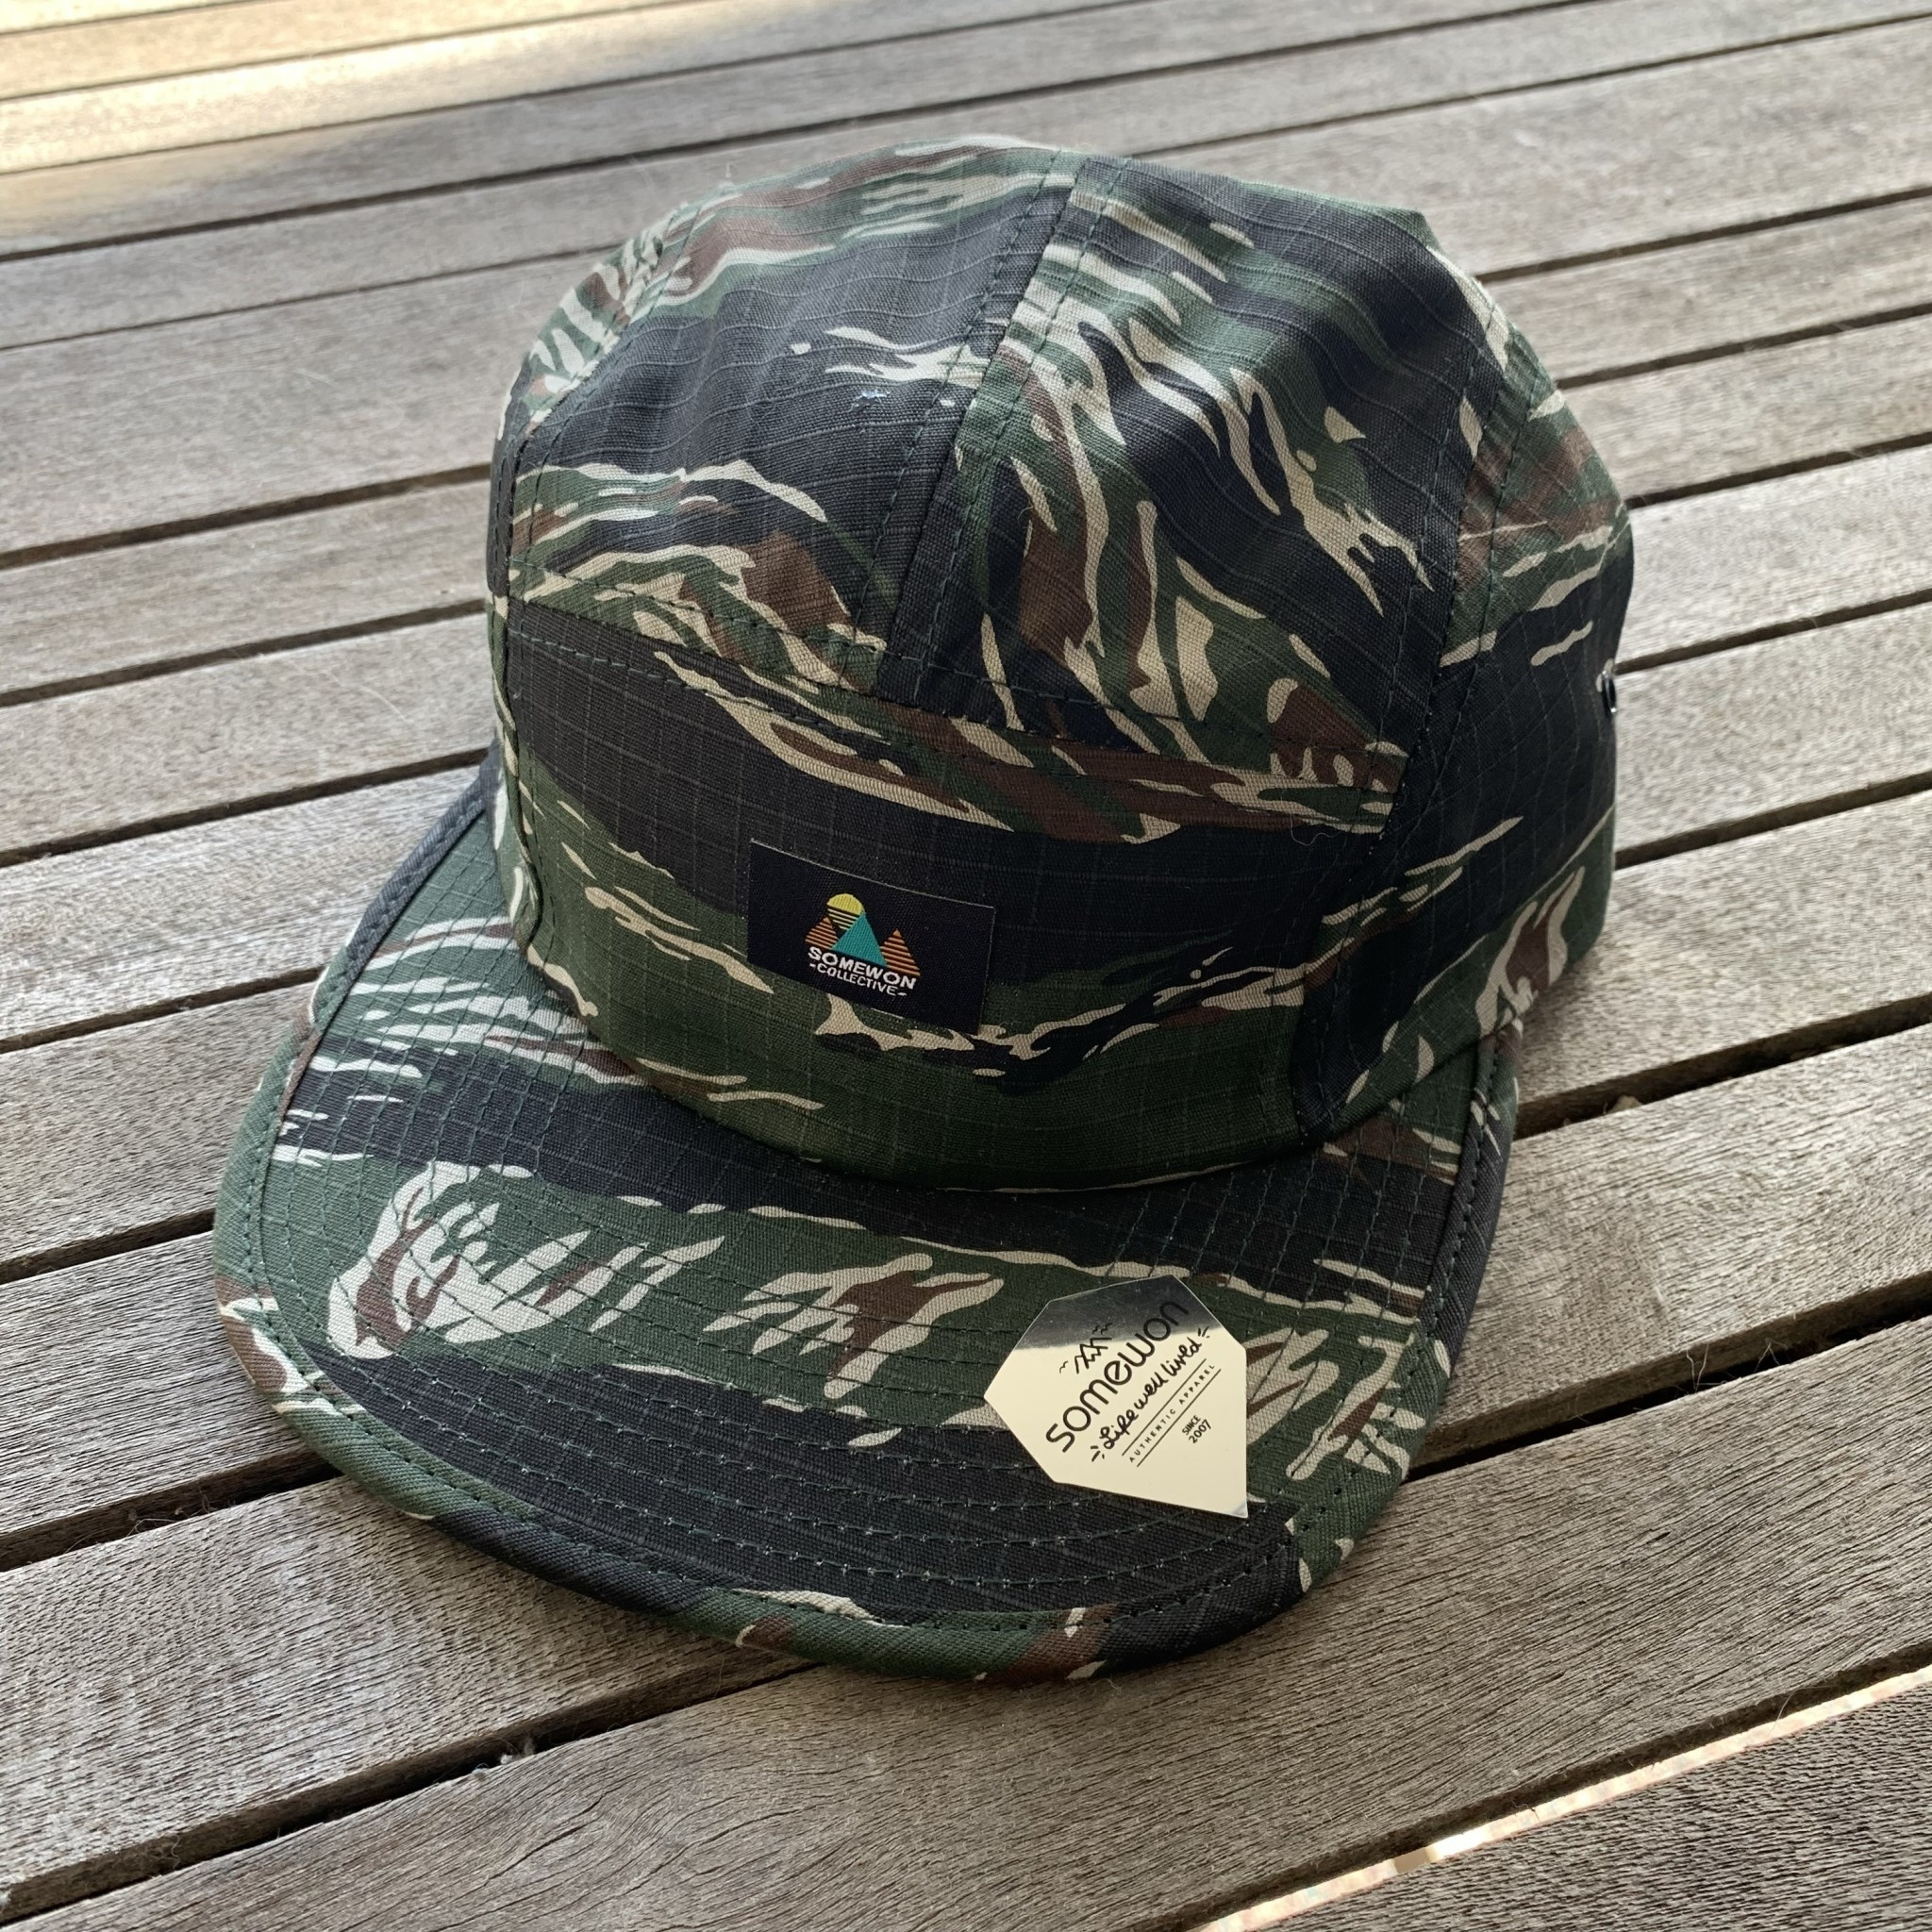 Somewon Collective SomewonCollective - Wearabouts Hat - Camo